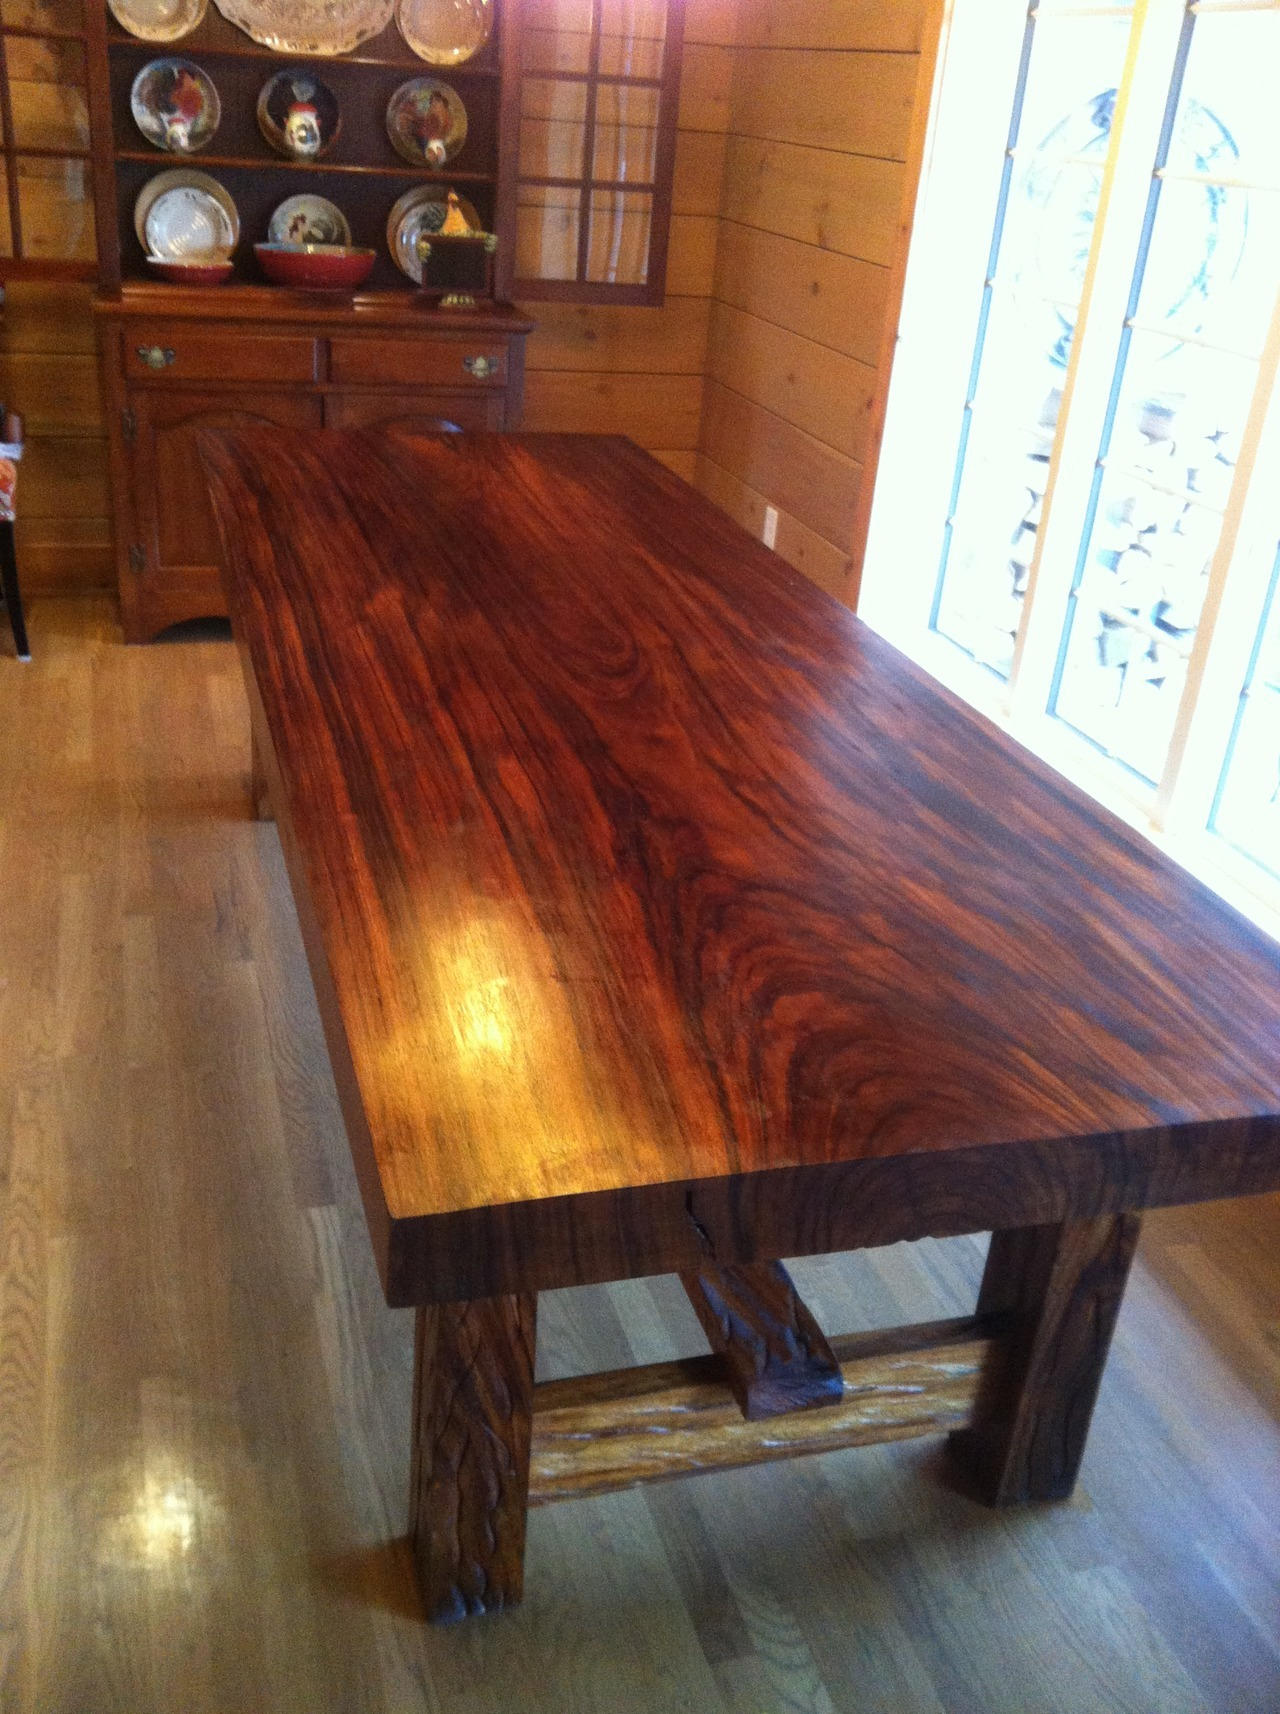 Just delivered this one of a kind table to Bowling Green, KY.  It was made by the Mission Lazarus vocational carpentry school in Honduras. Stop by our warehouse in Nashville and see what else we have!